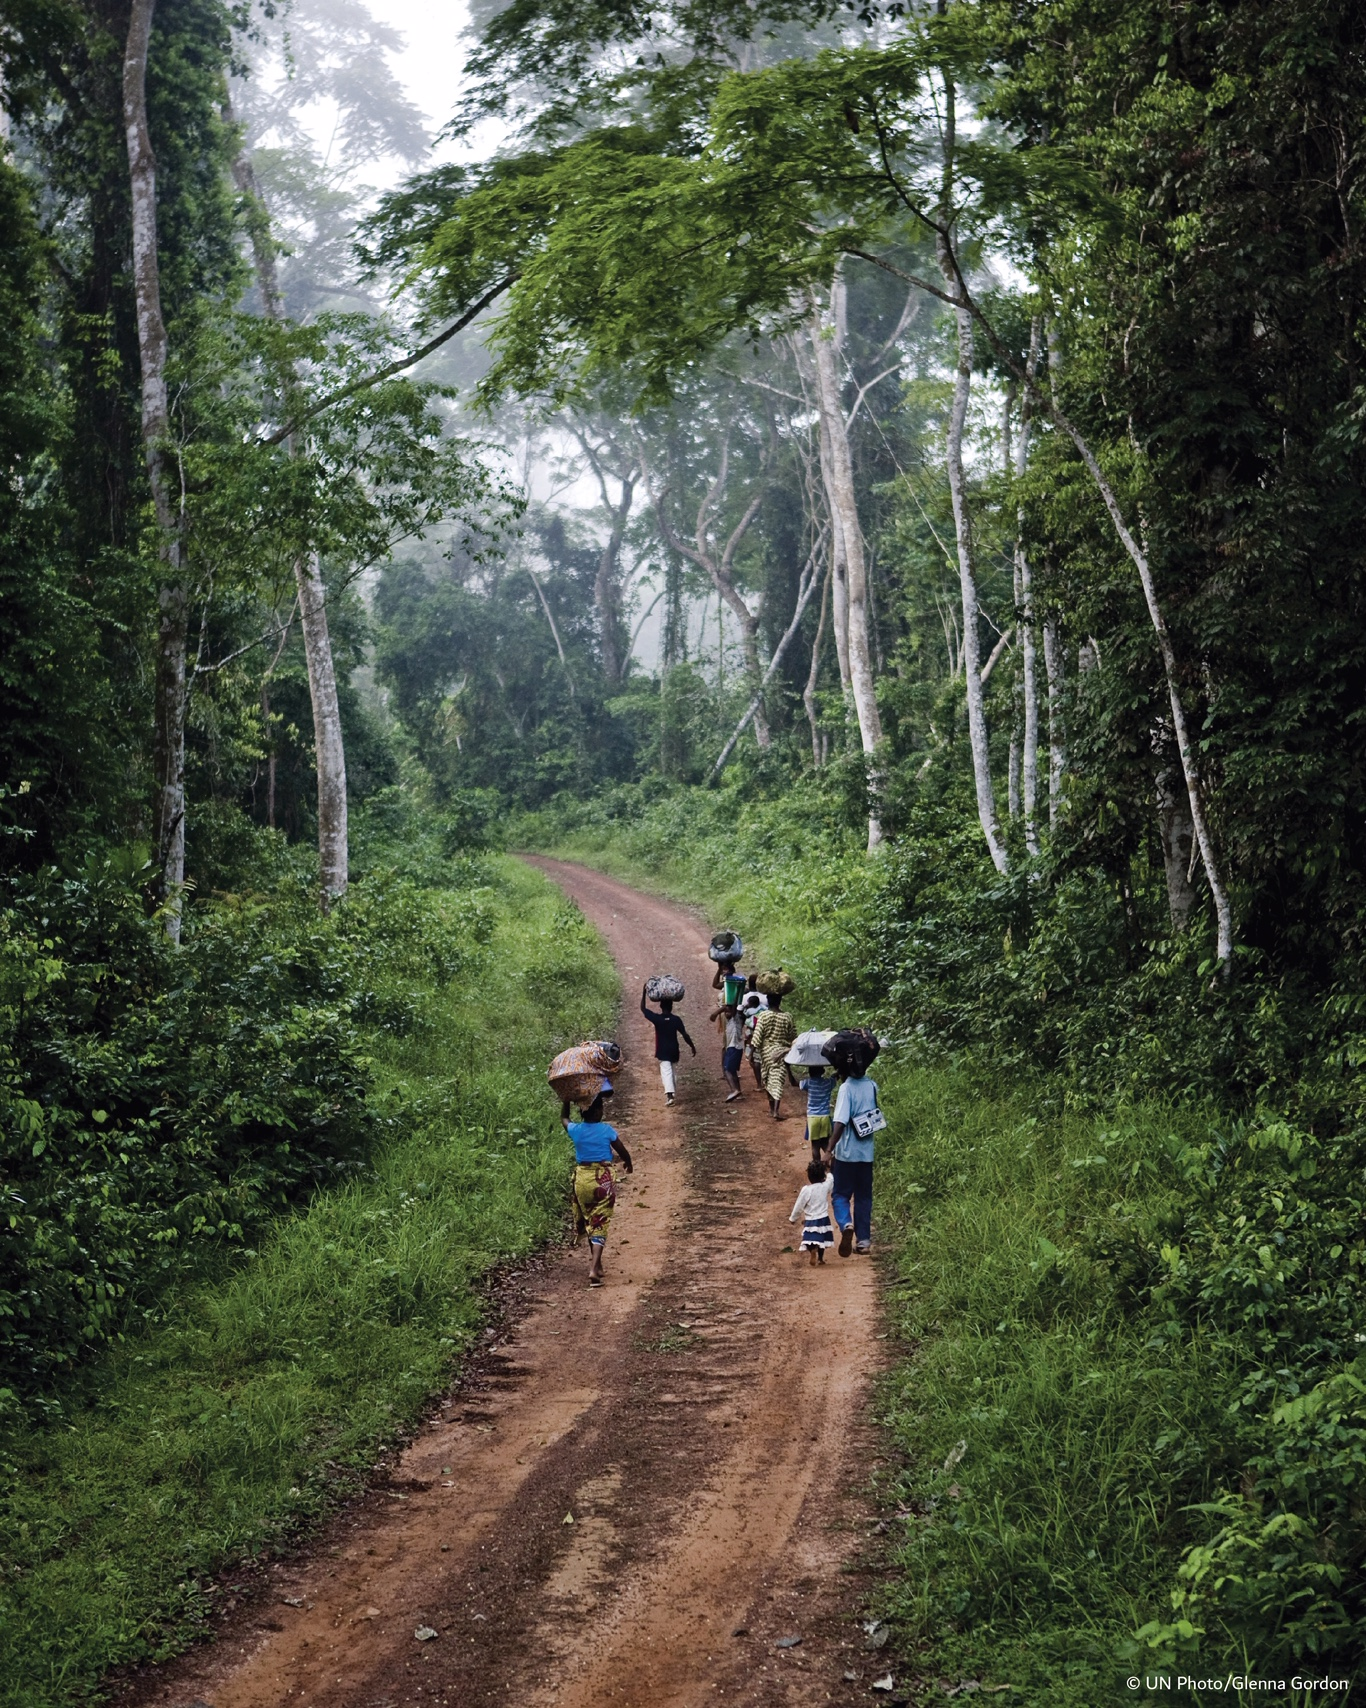 A family fleeing violence in the Ivory Coast walk along a forest track in south-east Liberia. Courtesy UN Photo / Glenna Gordon